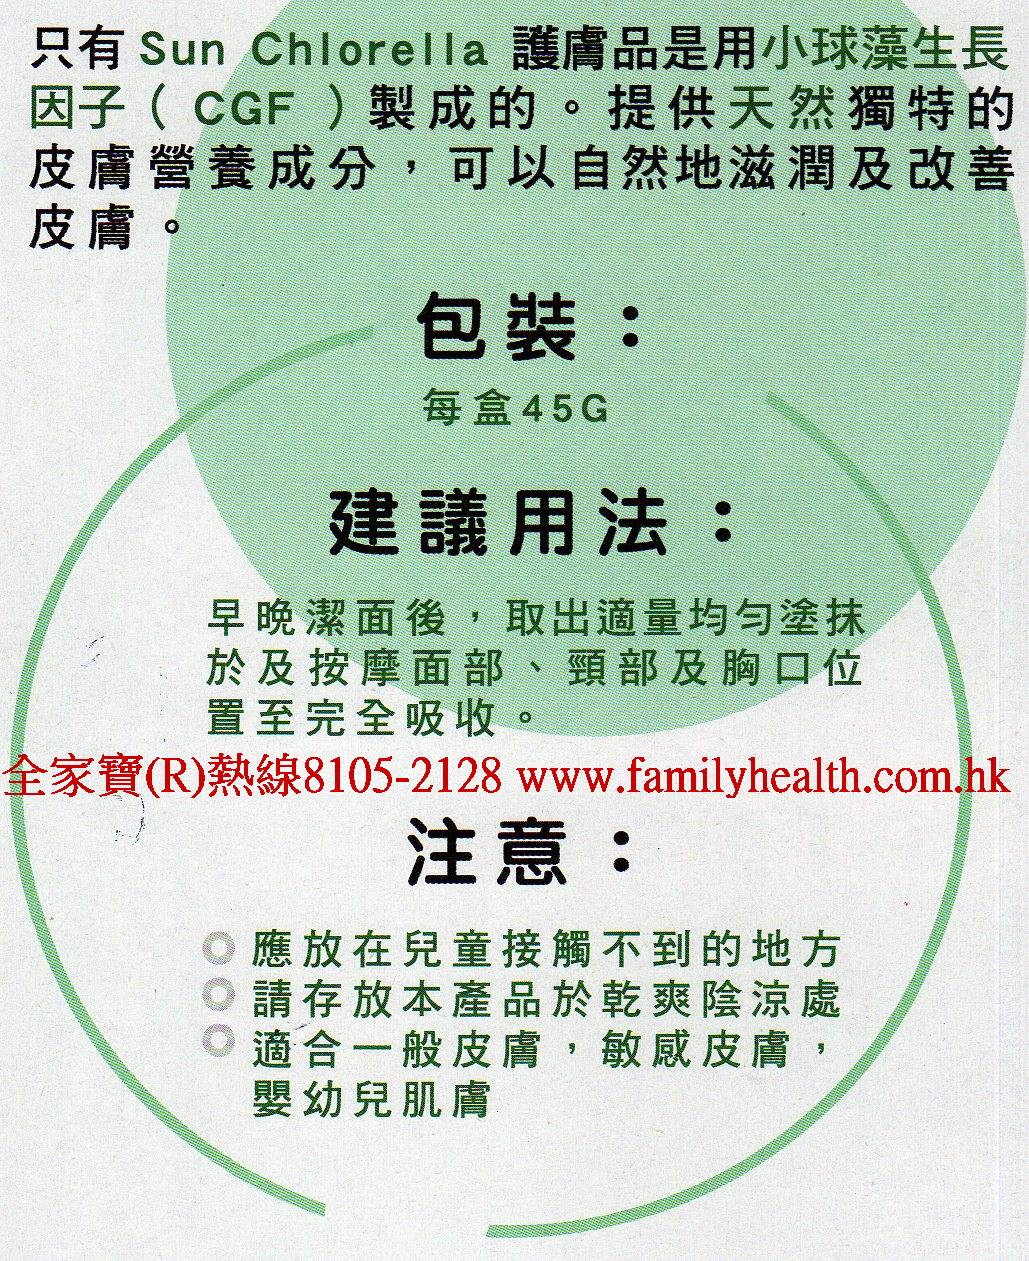 http://www.familyhealth.com.hk/files/full/1033_4.jpg